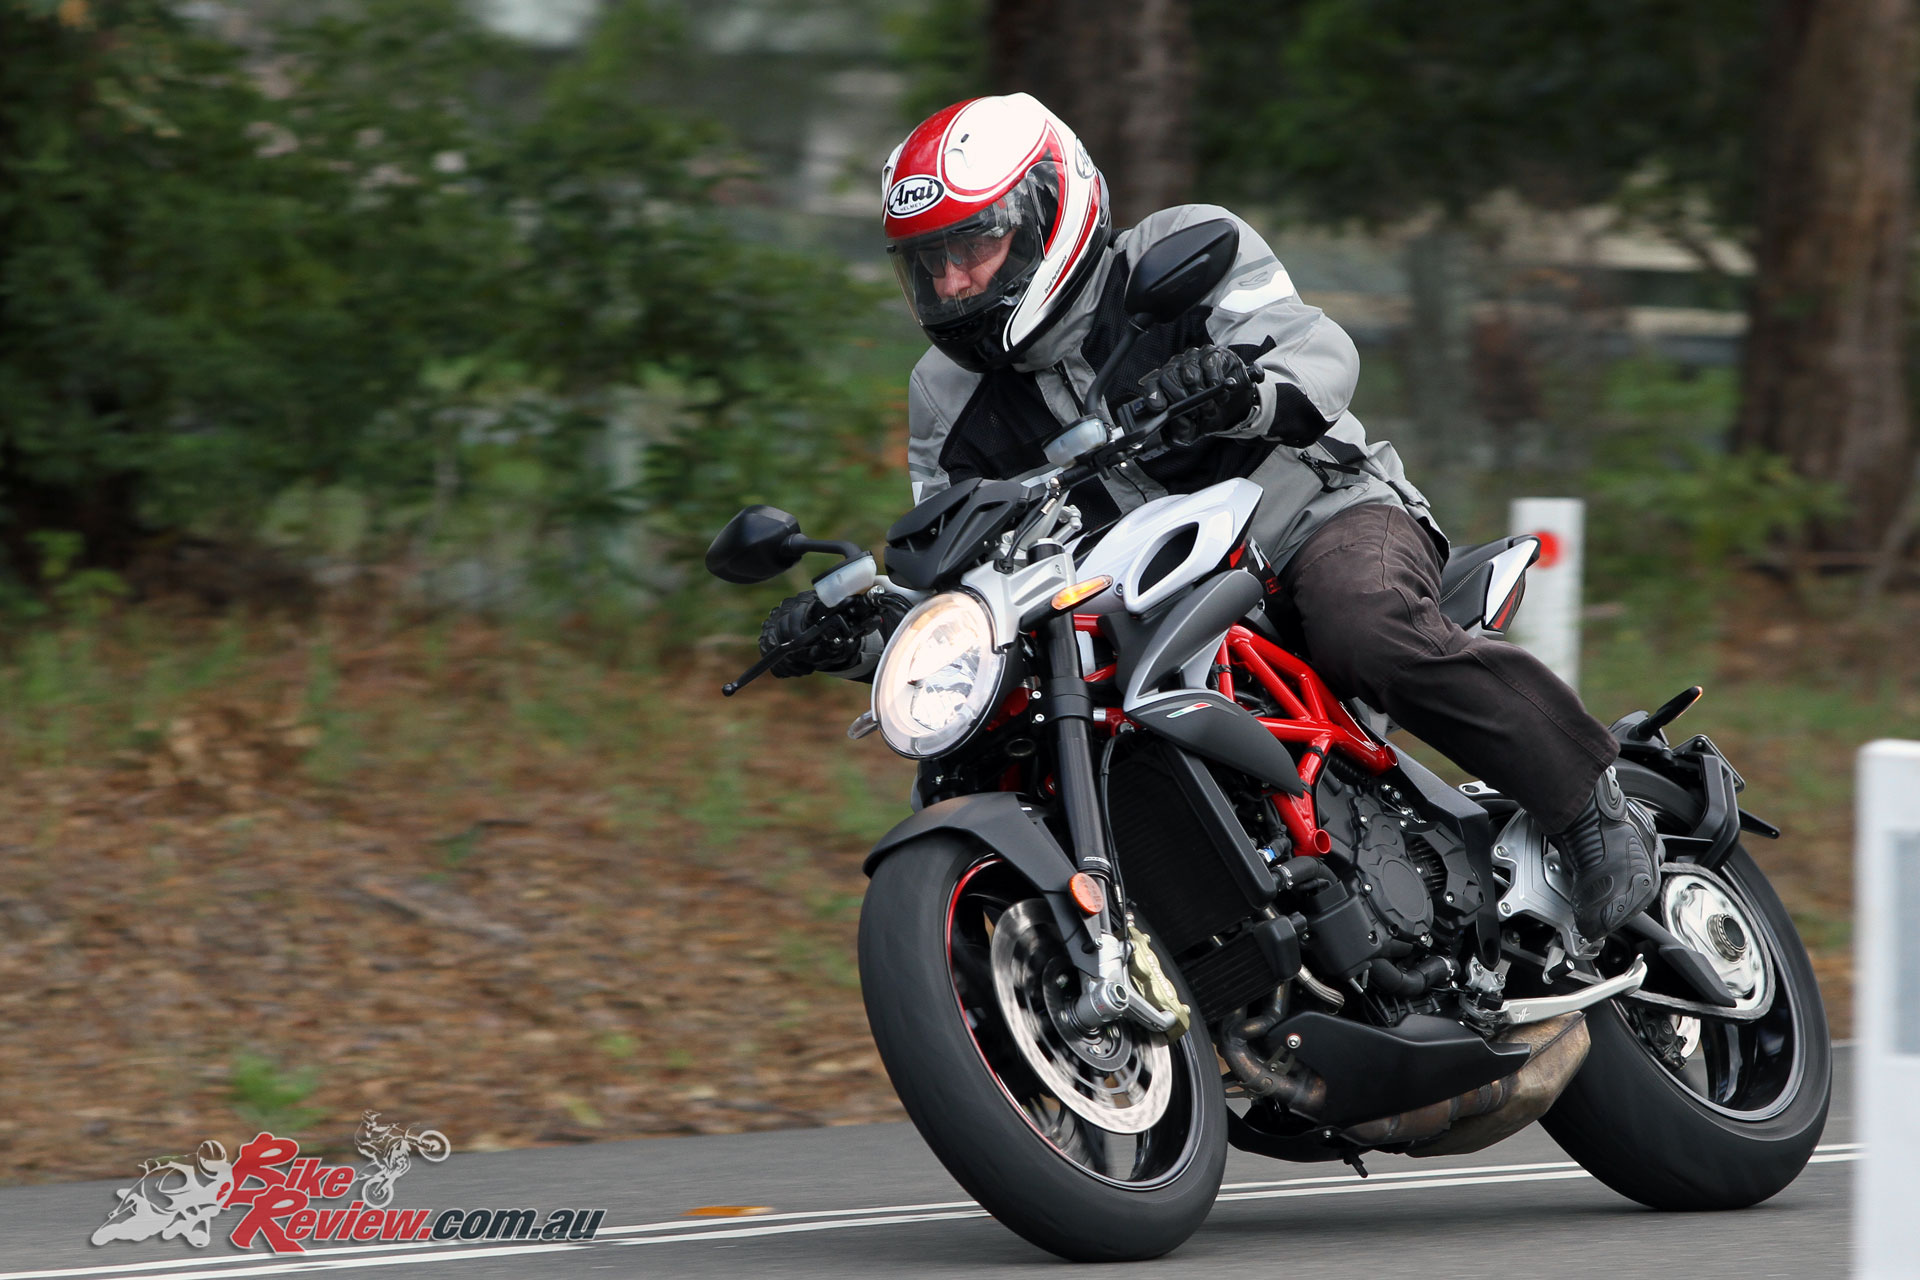 In our testers opinion the Brutale 800 RR holds the crown when it comes to styling in the nakedbike category